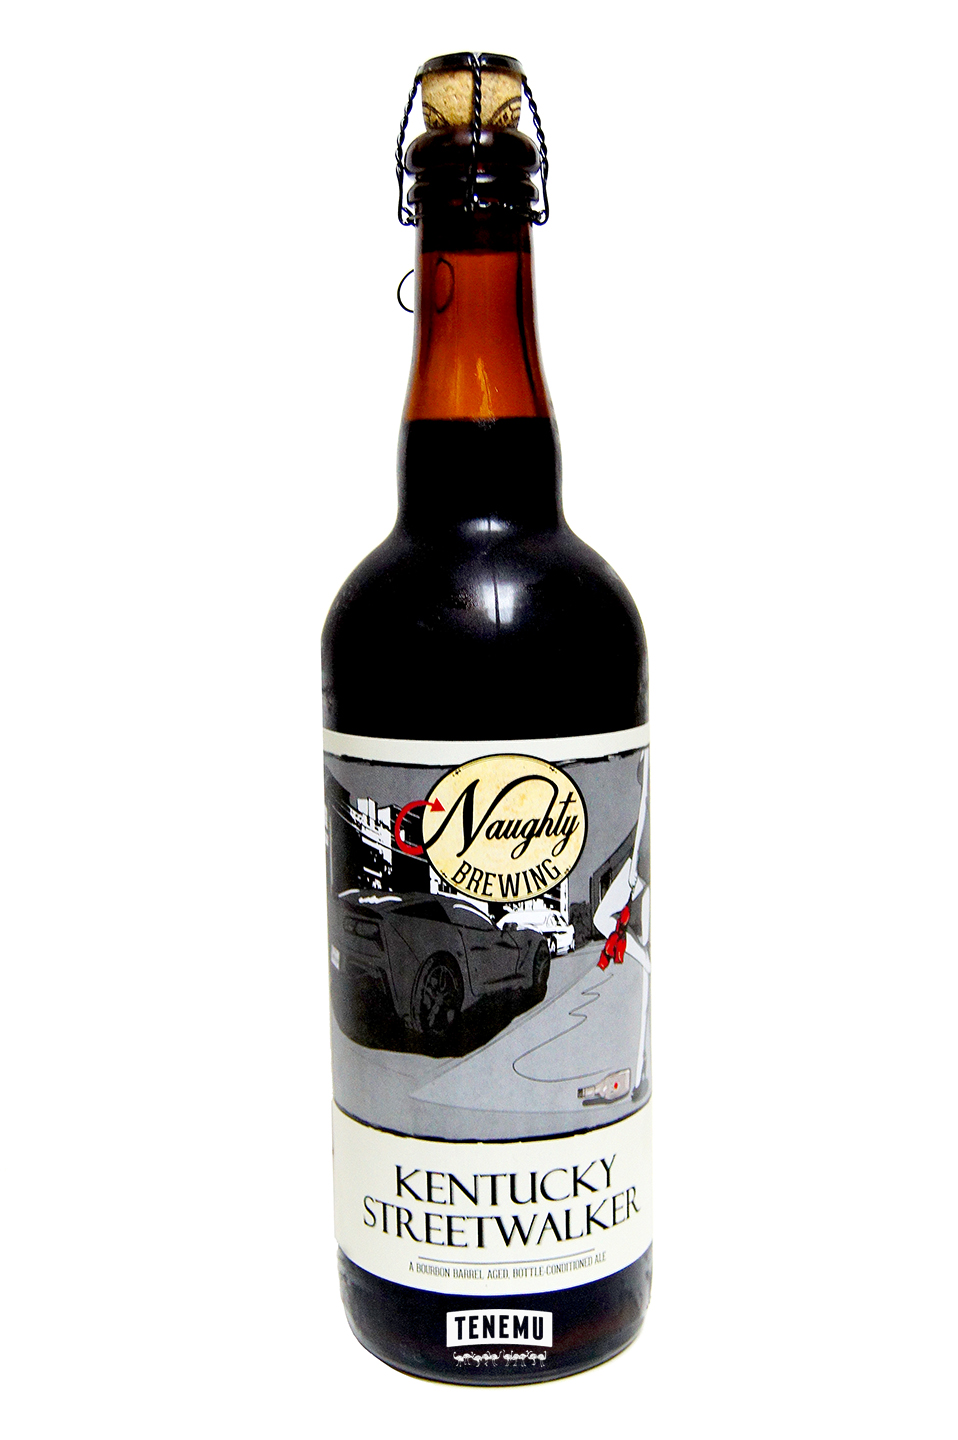 Naughty Brewing Kentucky Streetwalker bottle